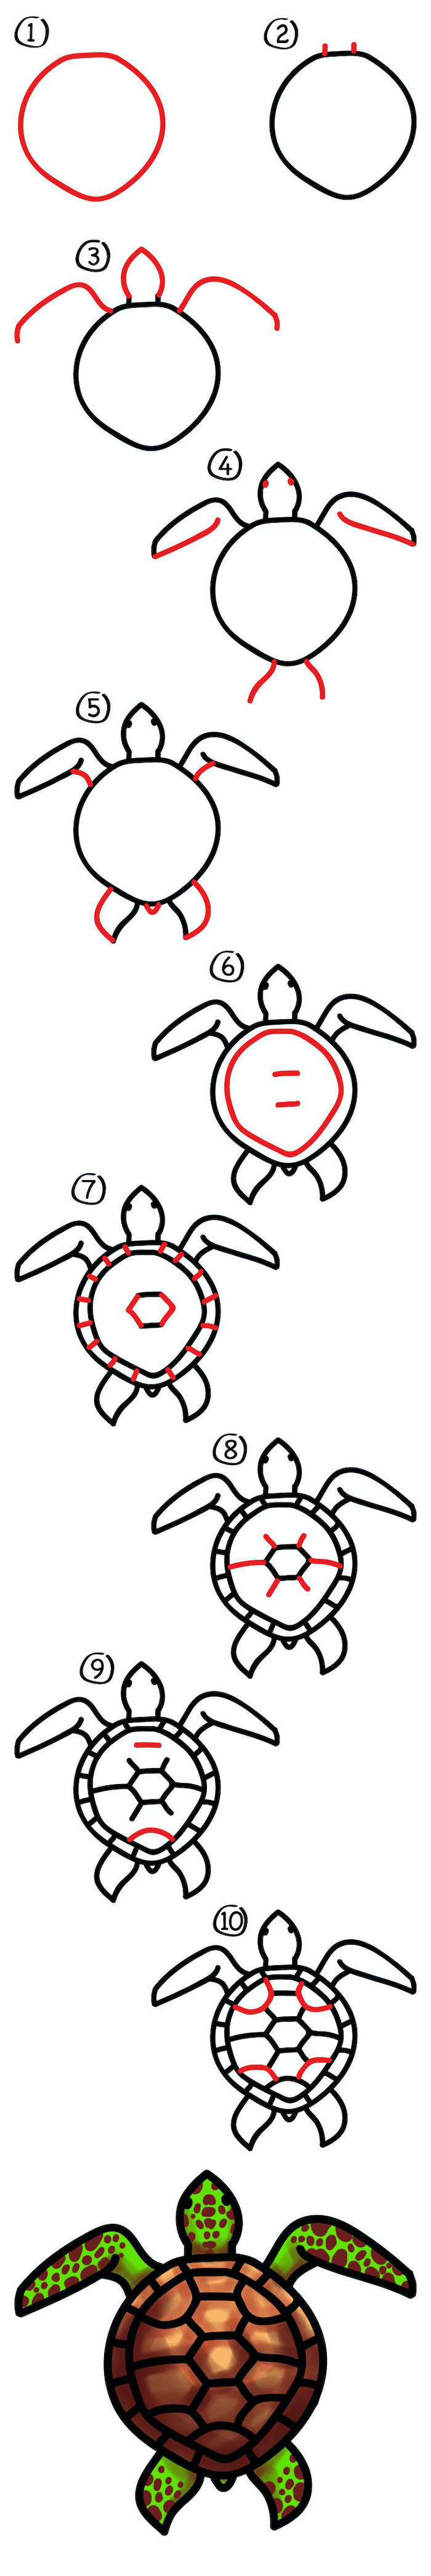 how to draw a turtle, step by step diy tutorial, cute drawings, sketch on white background